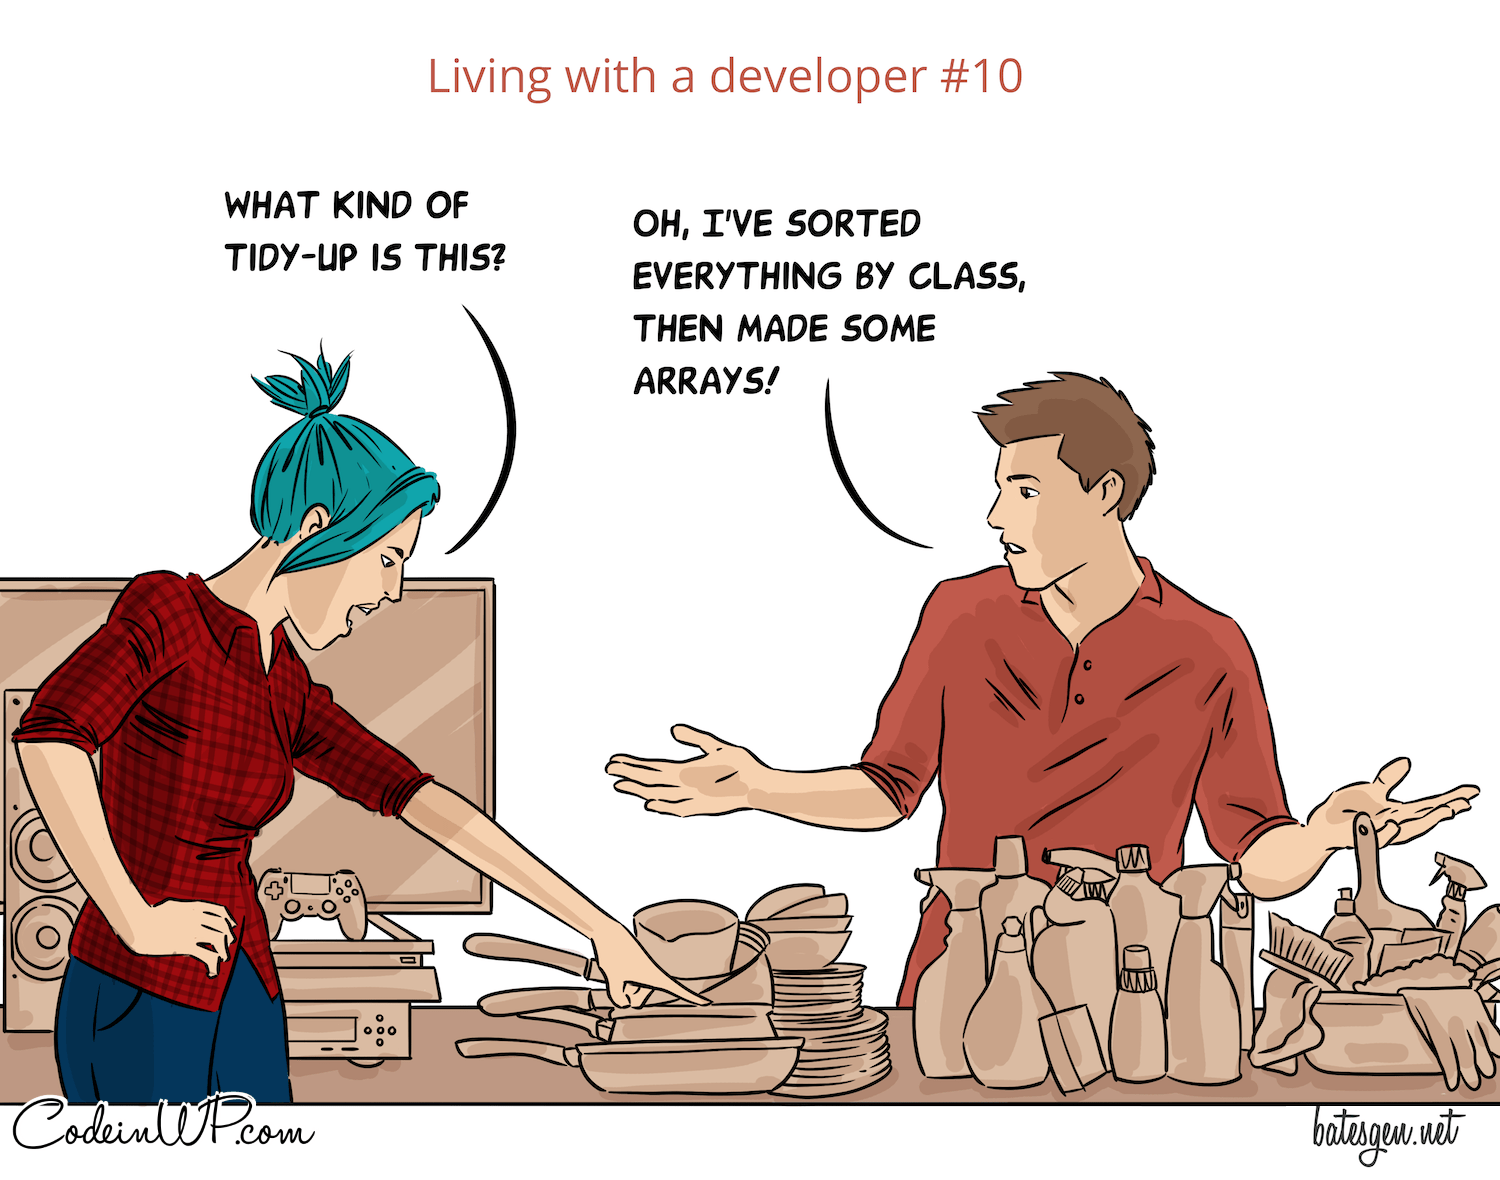 What is it like to live with a developer?